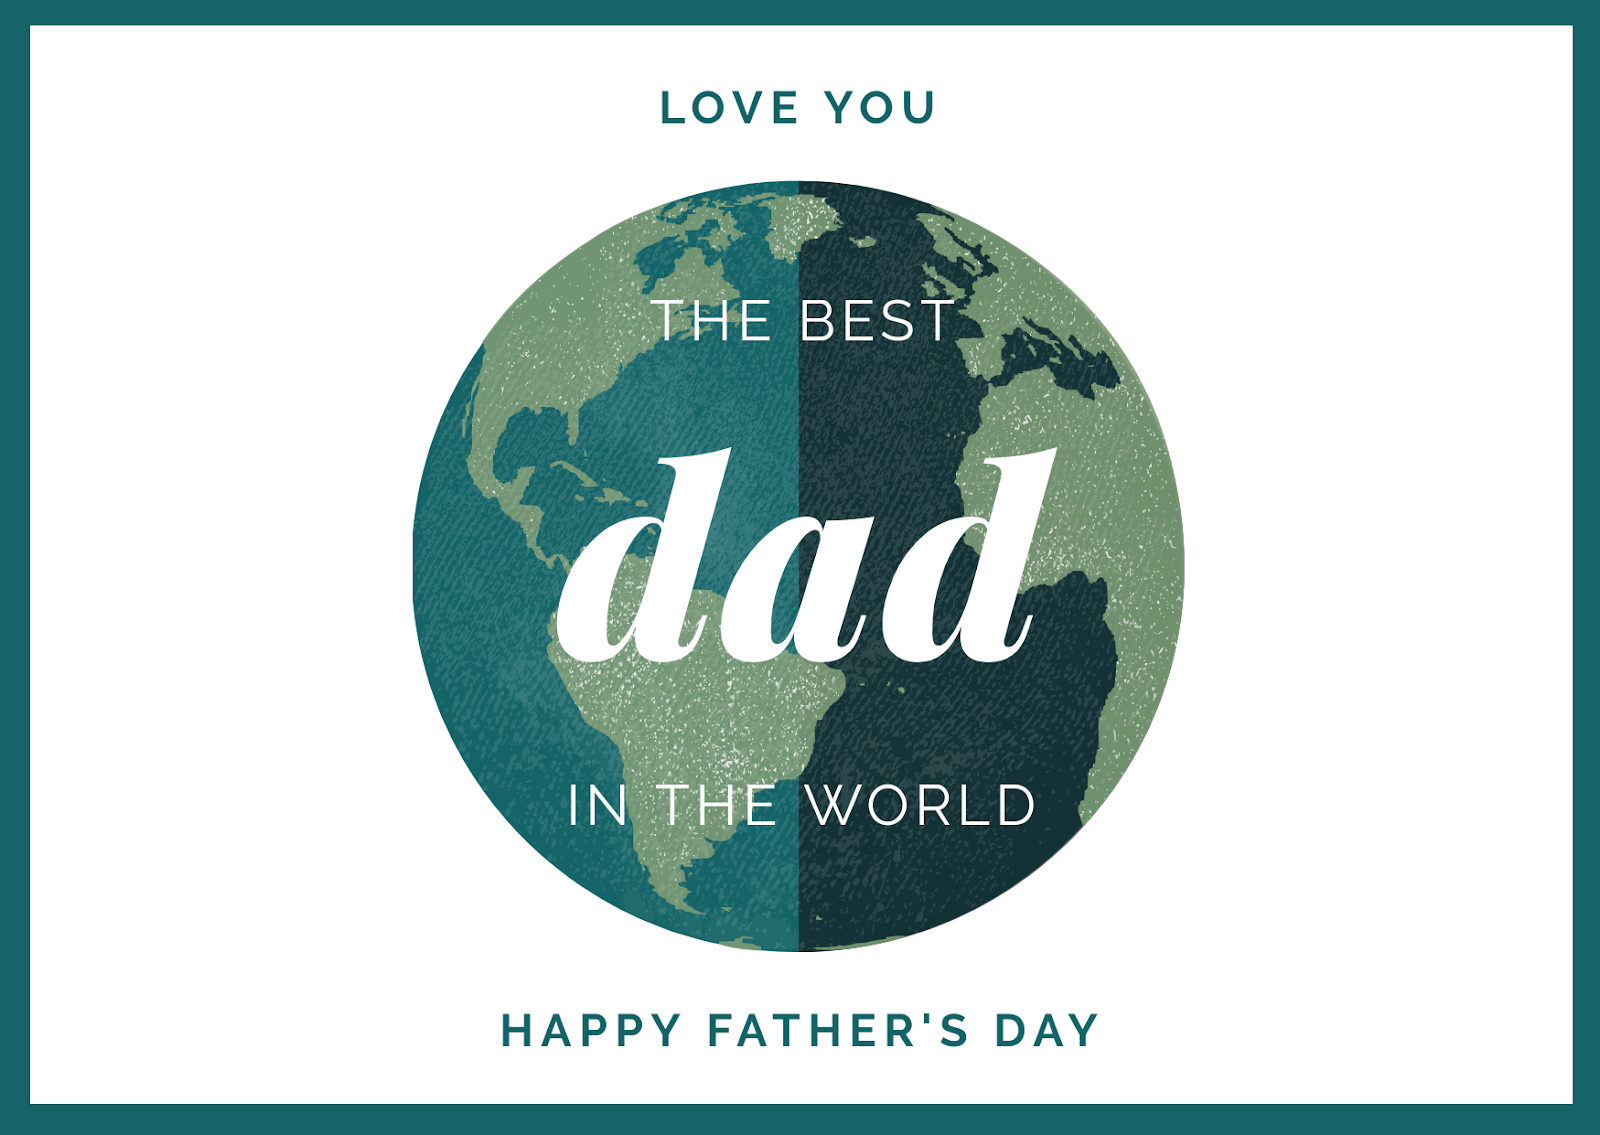 Happy fathers day images free download in hd